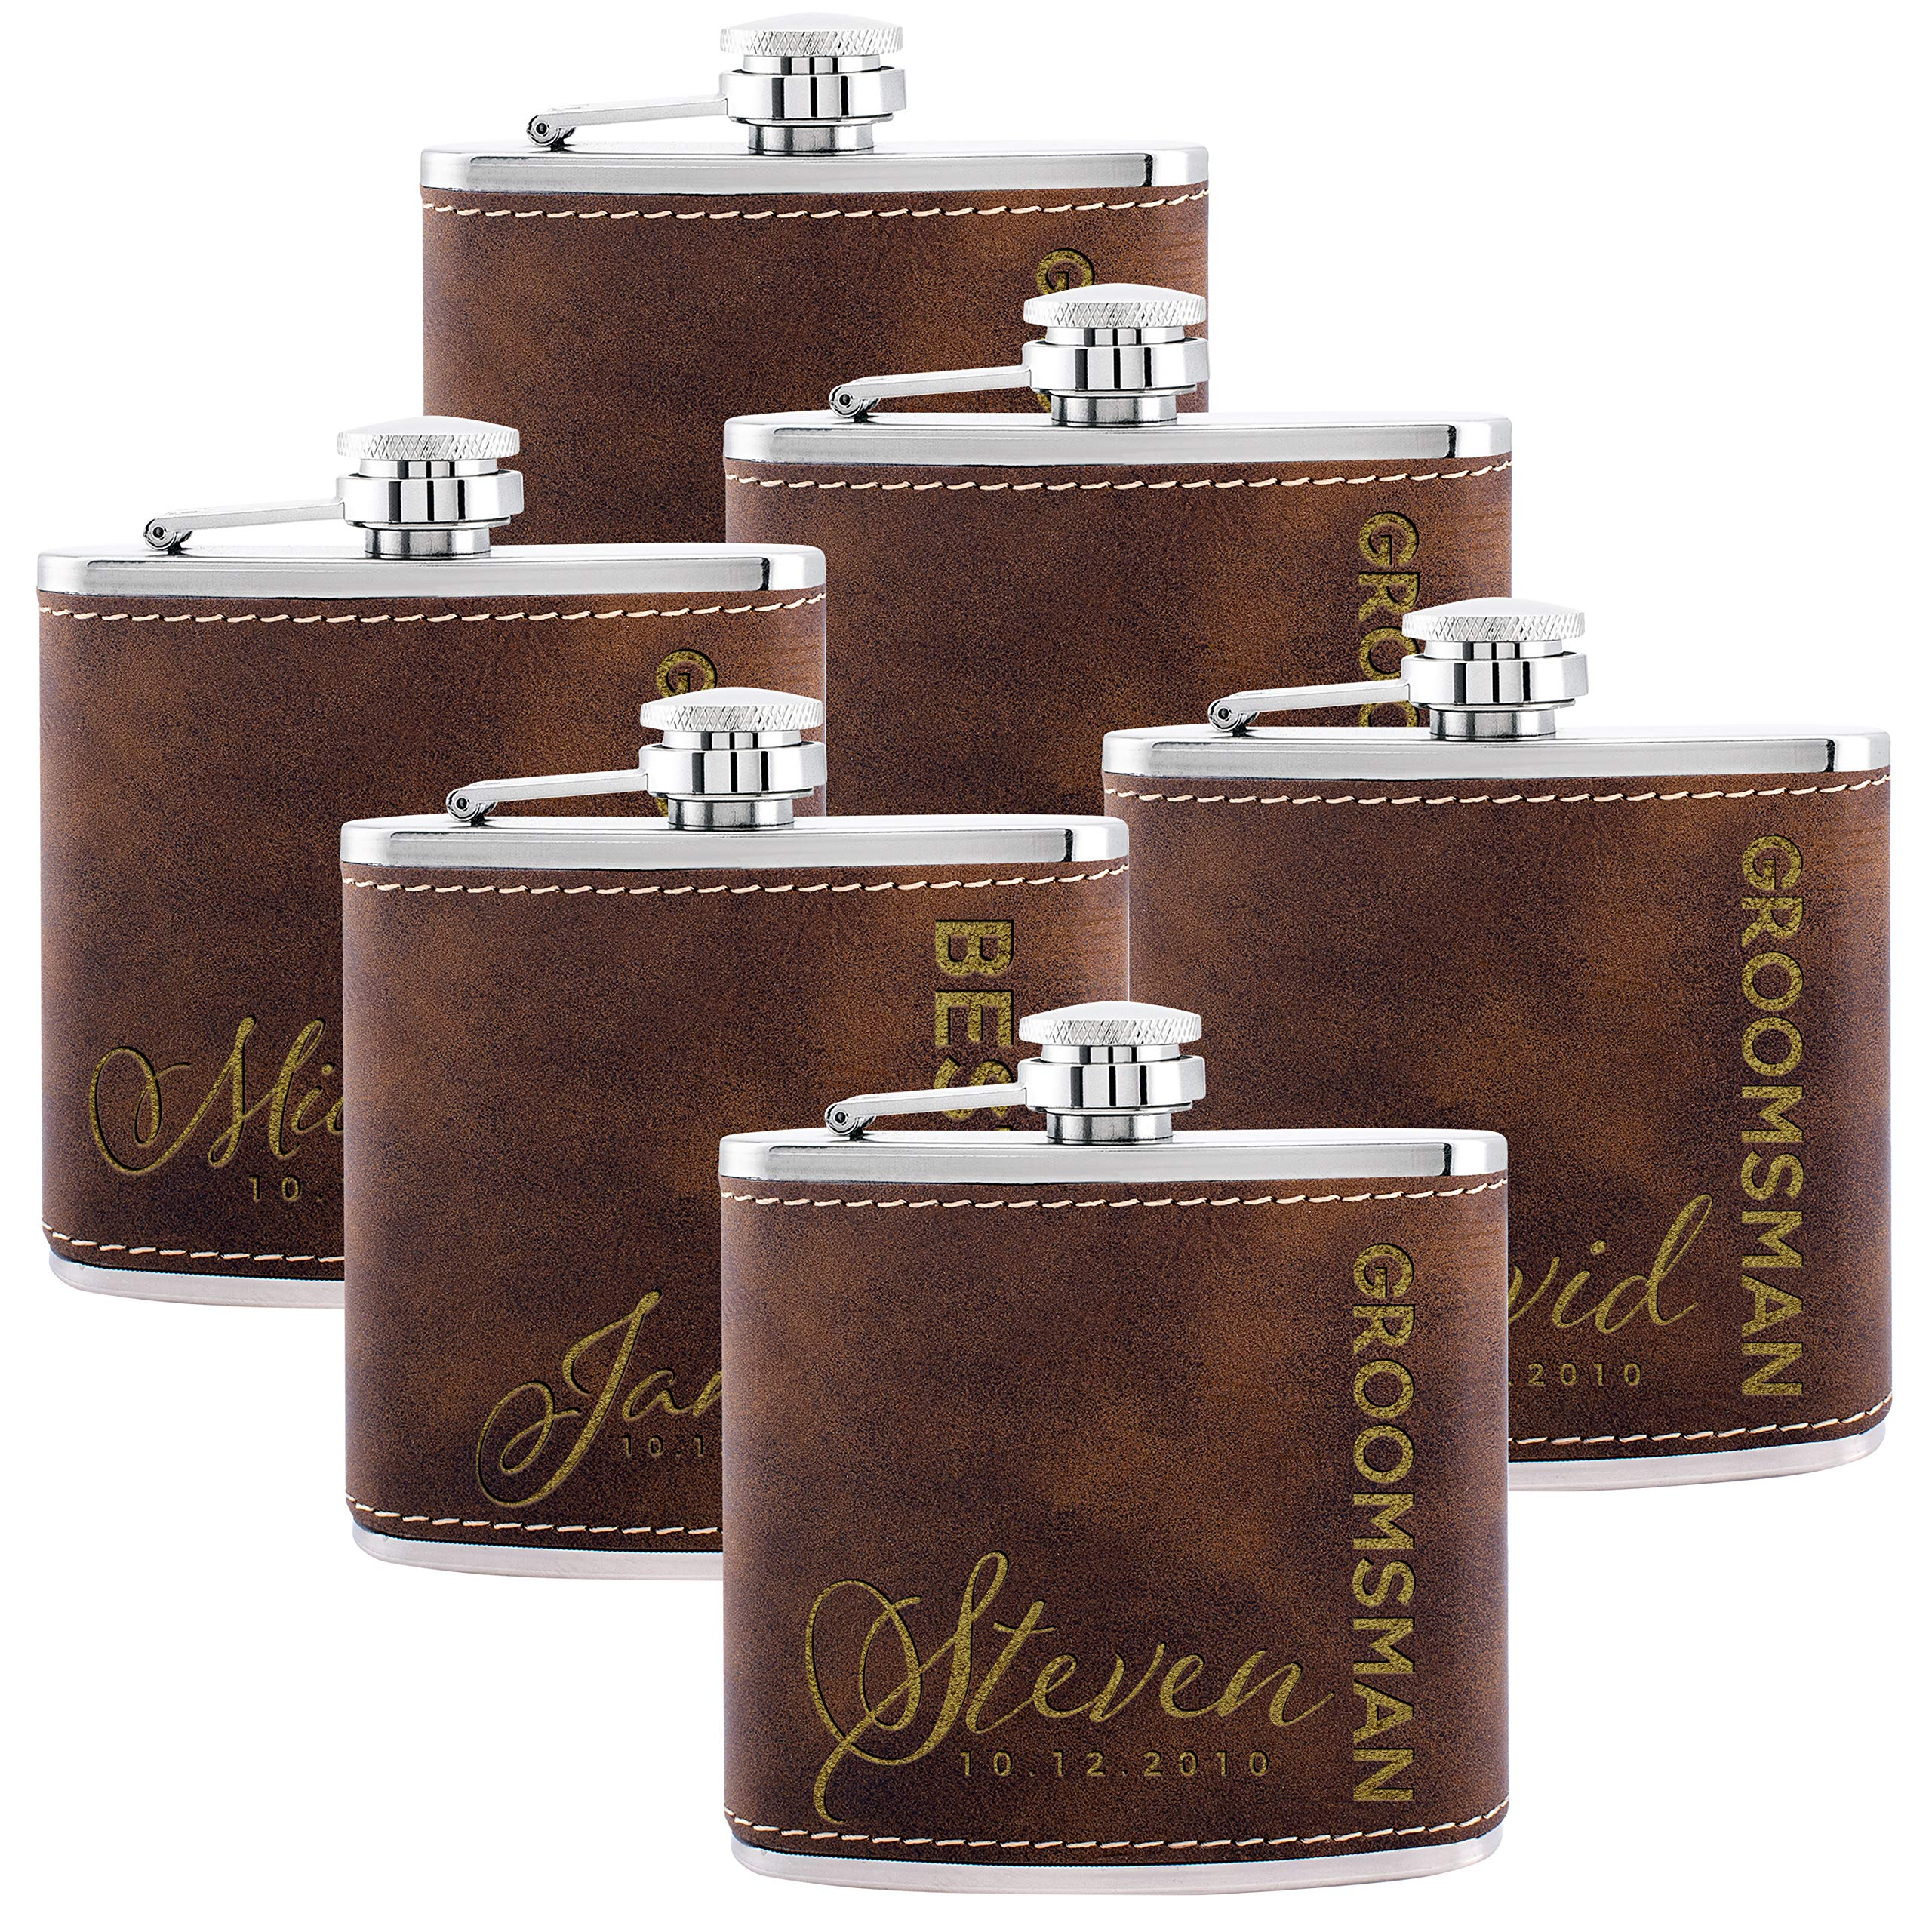 Personalized Flask For Wedding Groomsmen Gift, Customized Flask Set FREE Personalization - Laser Engraved - Design -6 (Leatherette, 6) by Lara Laser Works